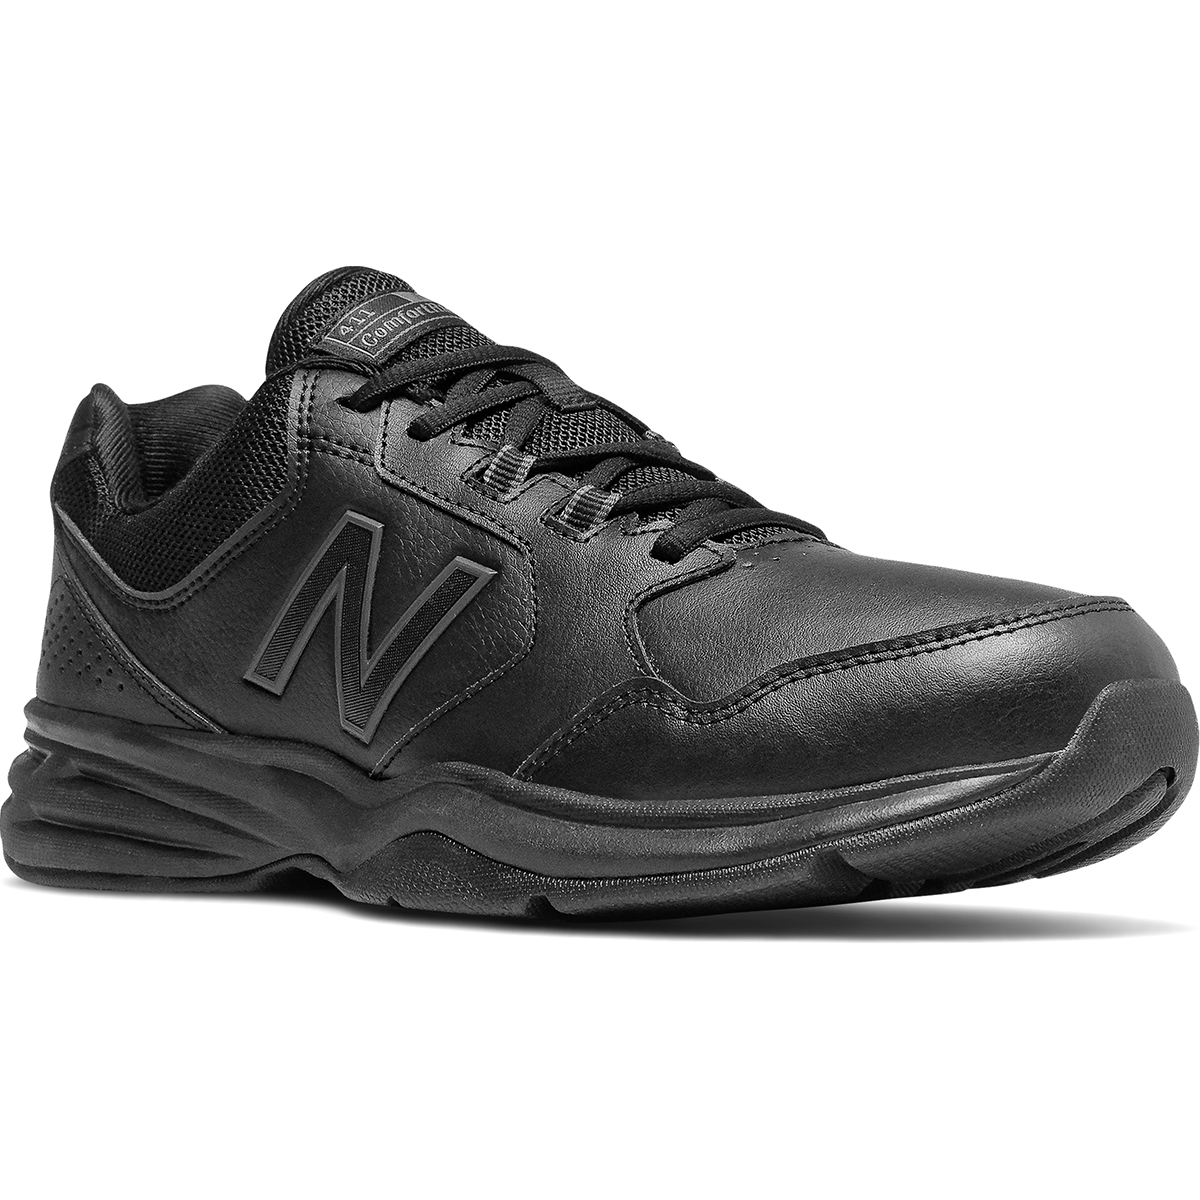 New Balance Men's 411 Walking Shoes - Black, 9.5